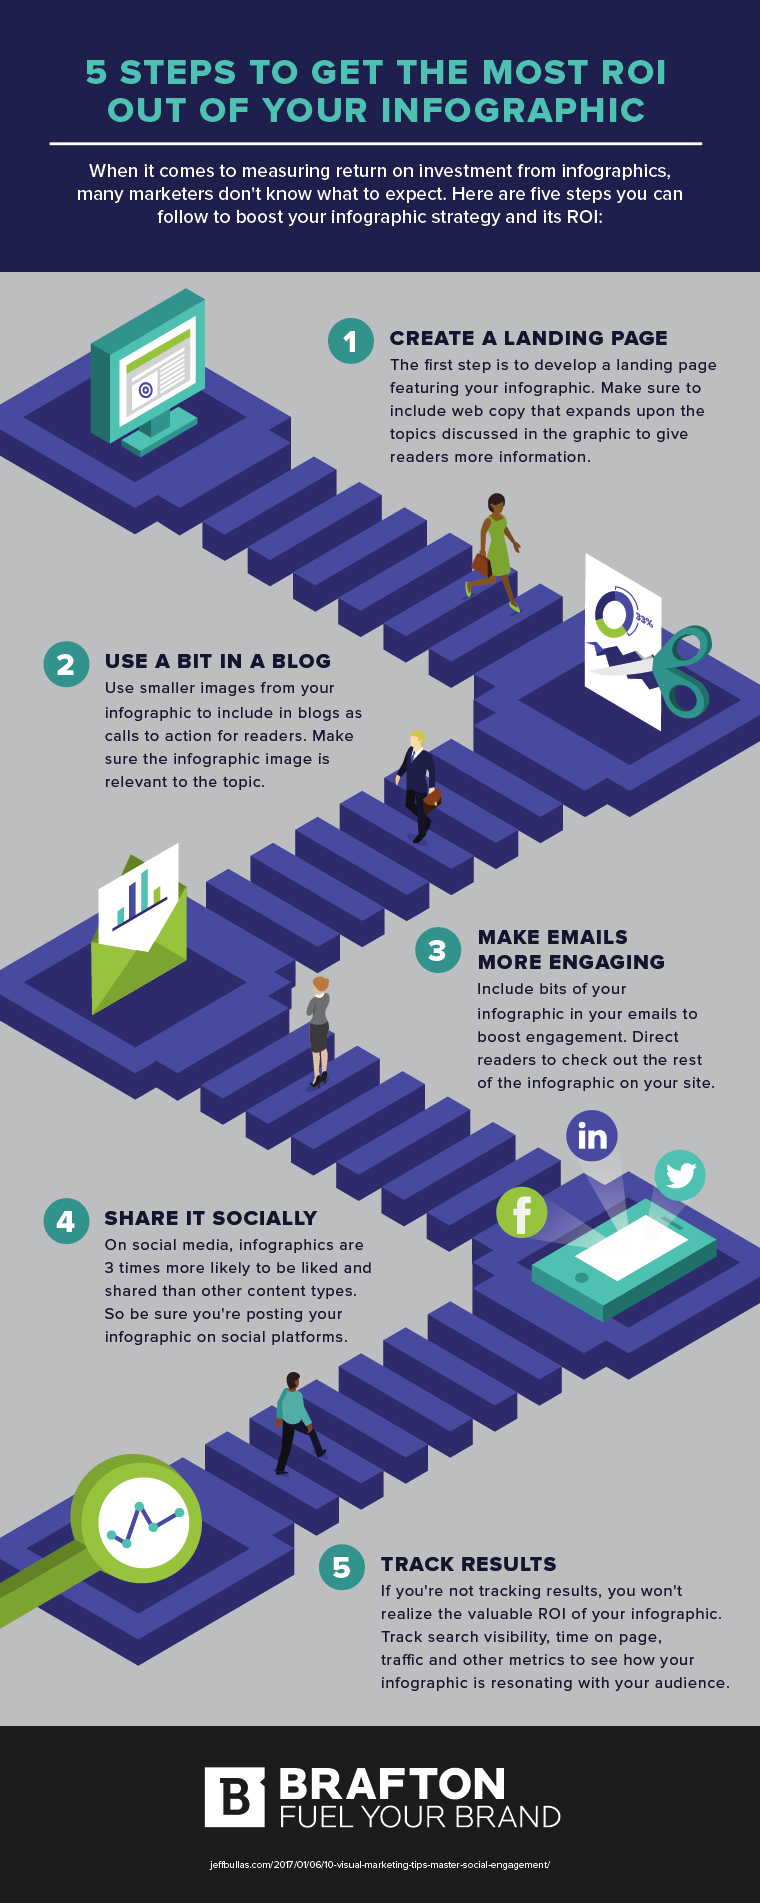 Infographic outlines how to make the most of your infographic campaigns